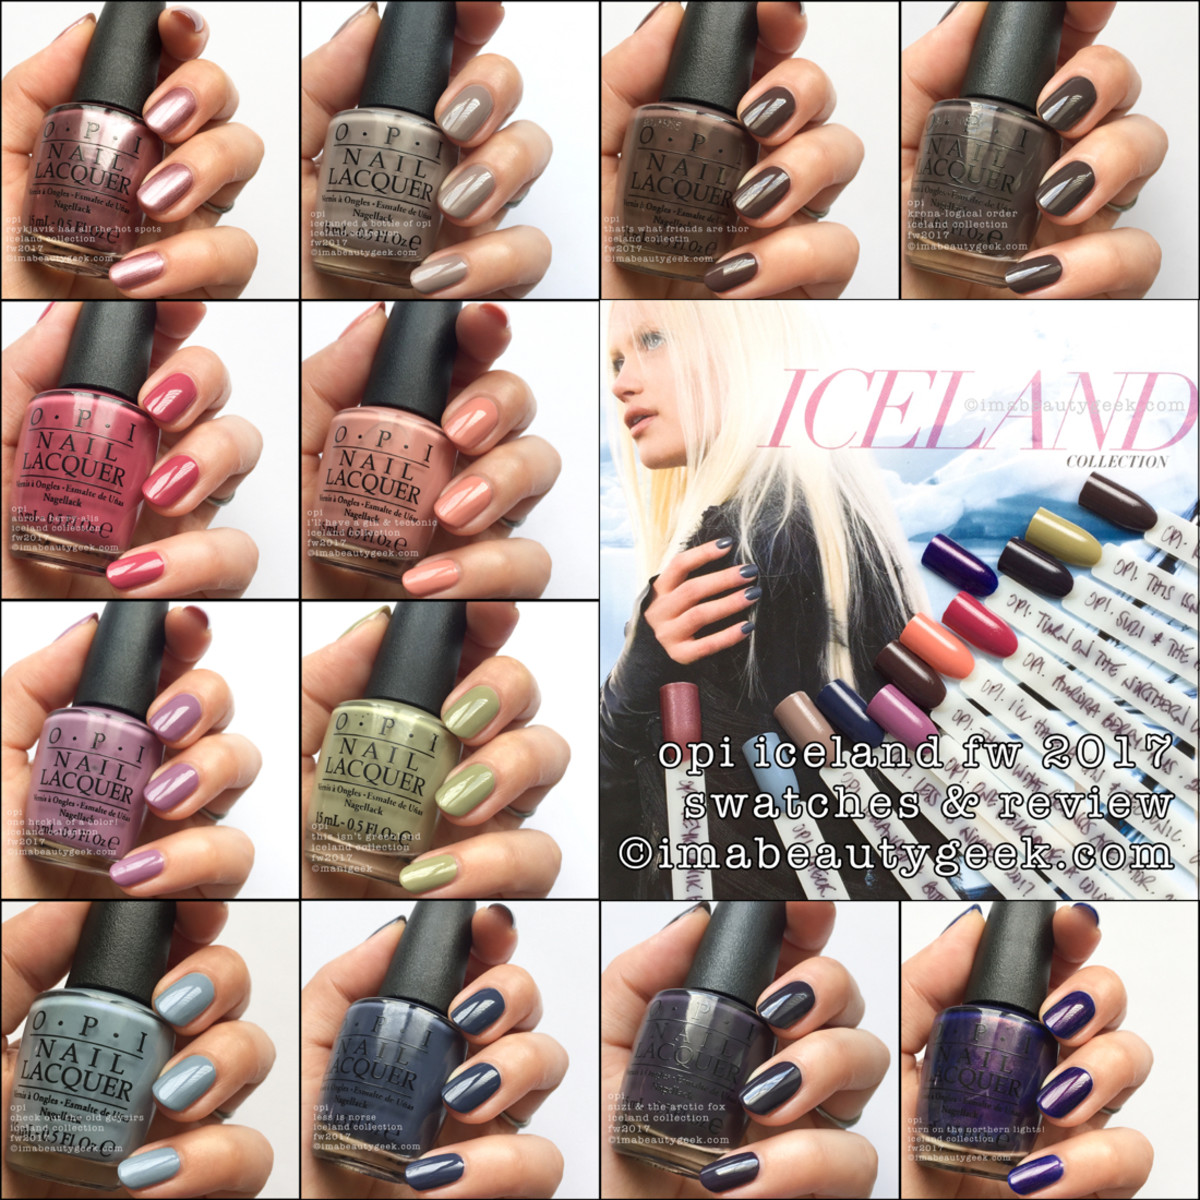 OPI Iceland Swatches Review 2017 FW Beautygeeks Composite